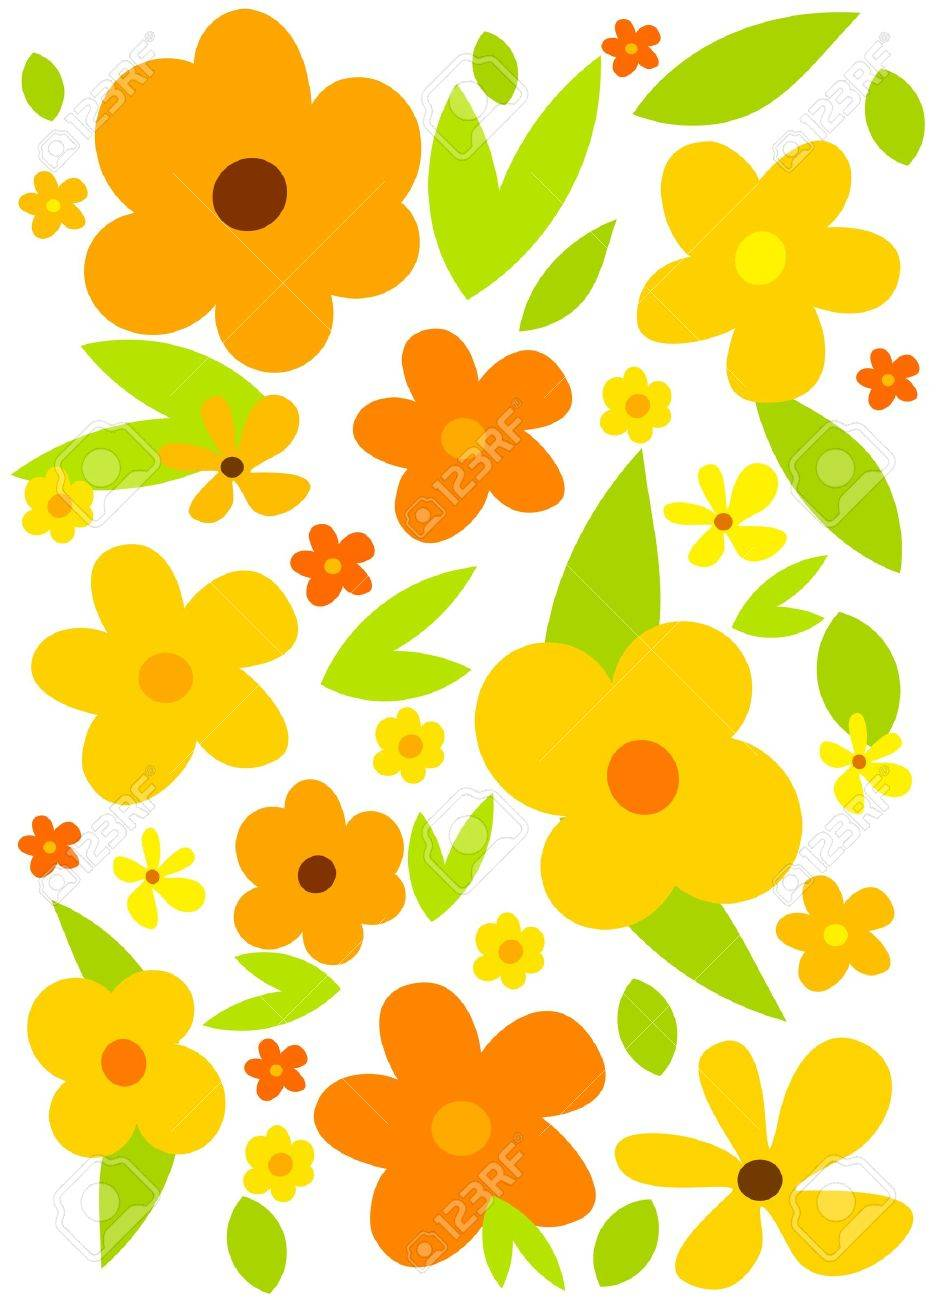 Flower background with yellow flowers. Vector.